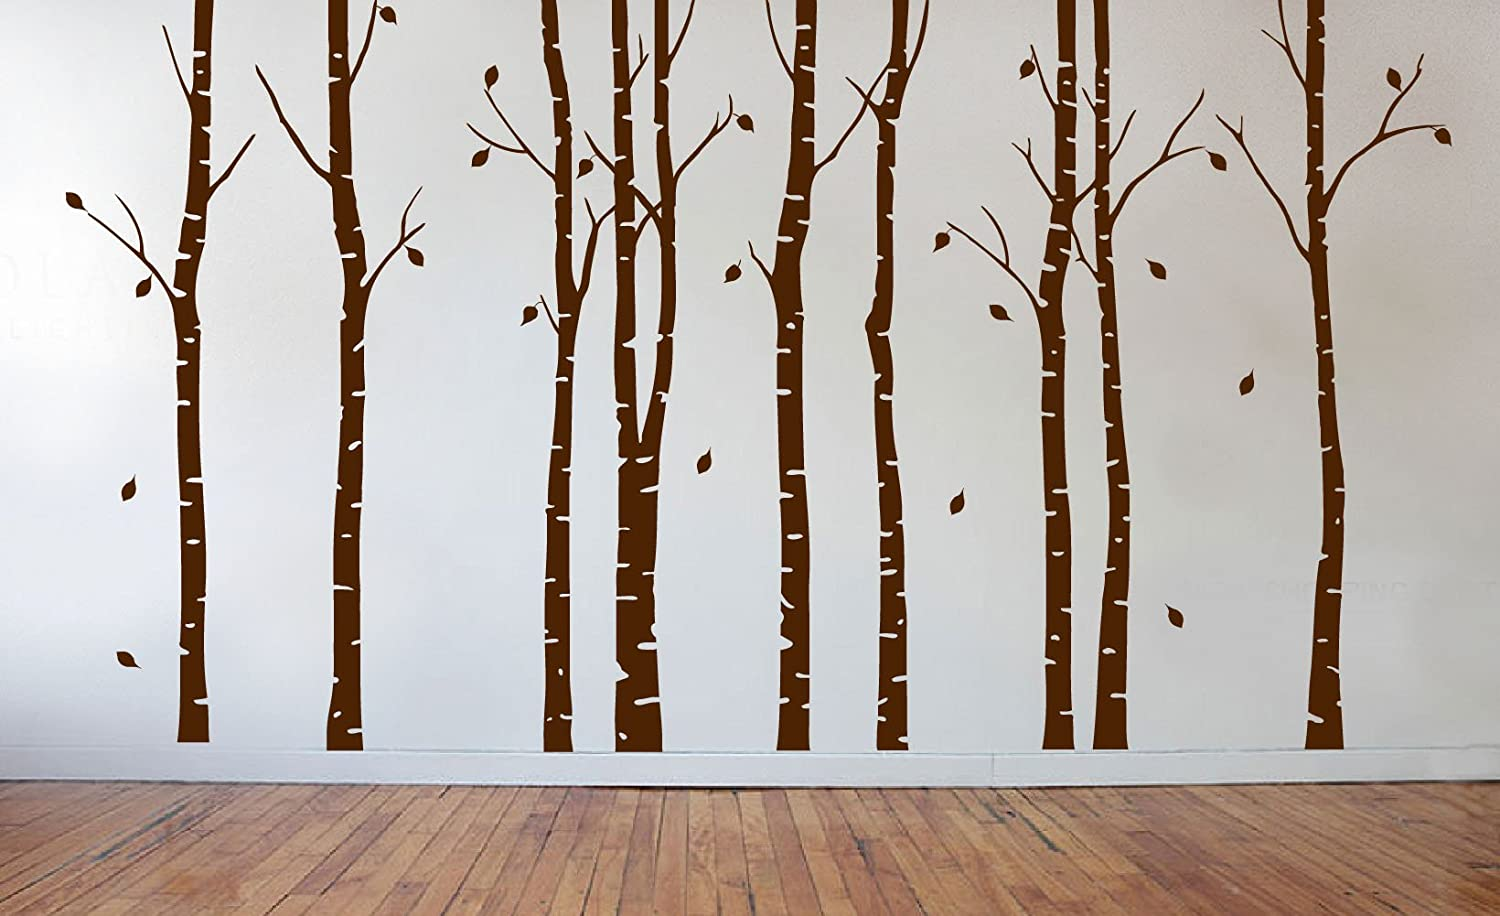 #1263 Tall Matte White, 84 7ft Birch Tree Wall Decal Nursery Forest Vinyl Sticker Removable Animals Branches Art Stencil Leaves 9 Trees